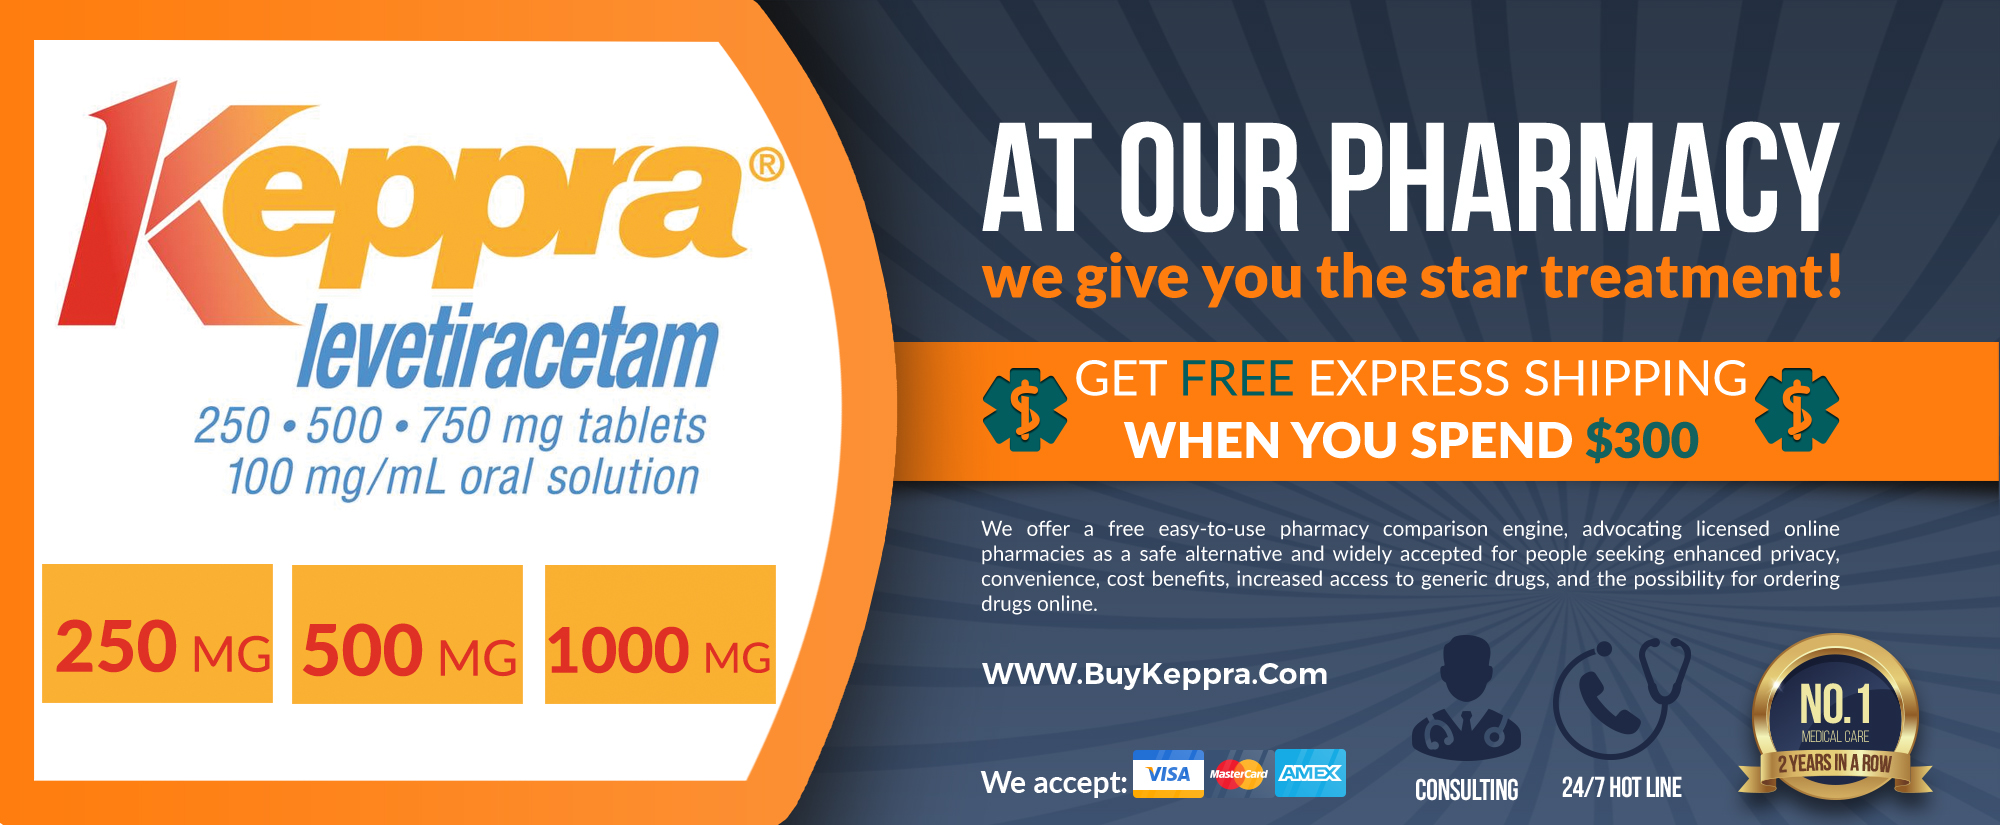 Buy Keppra Online No Prescription